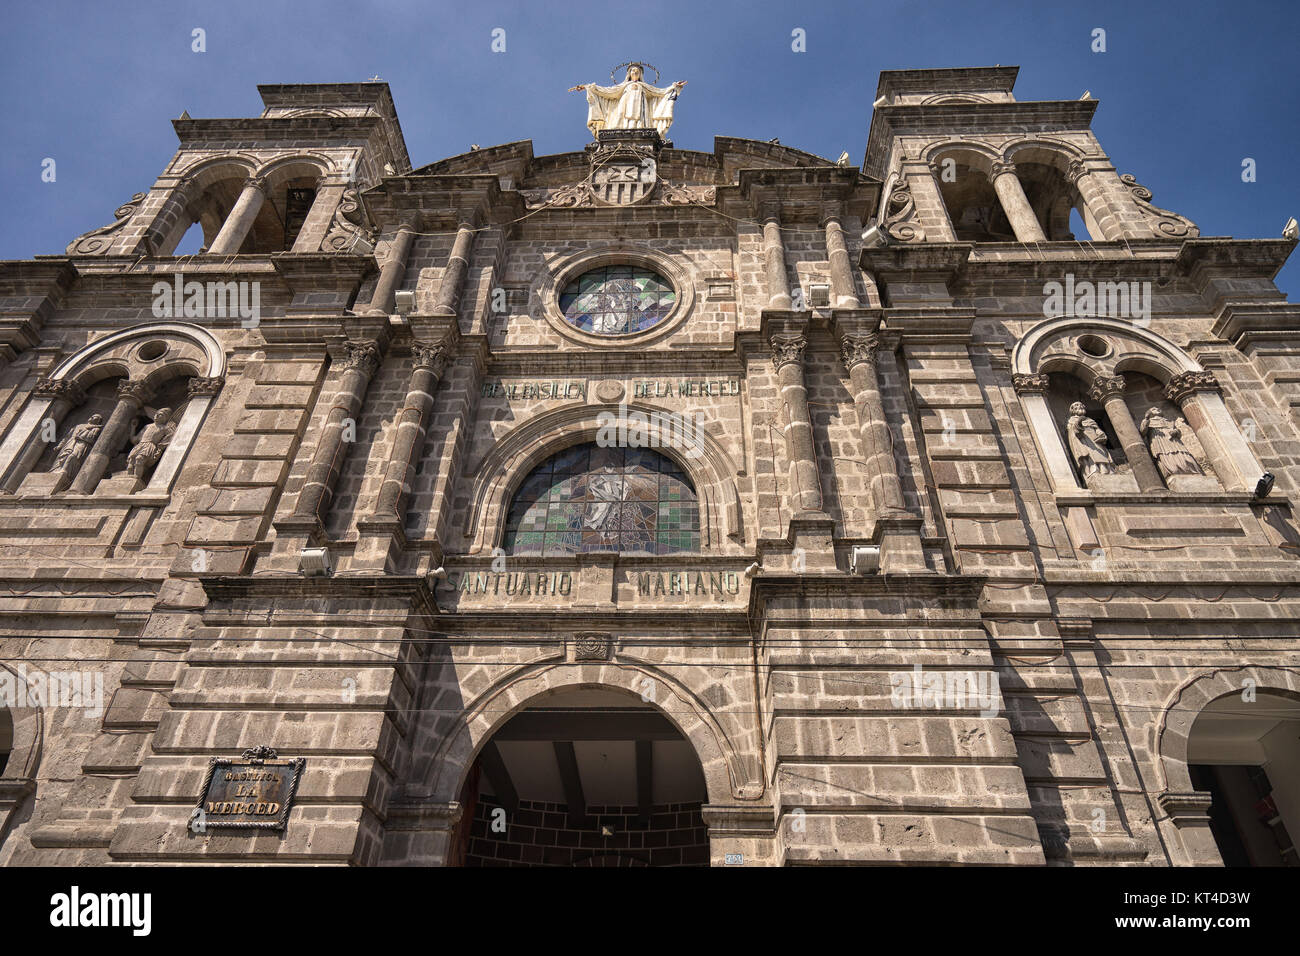 the Merced basilica in Ibarra historic center - Stock Image